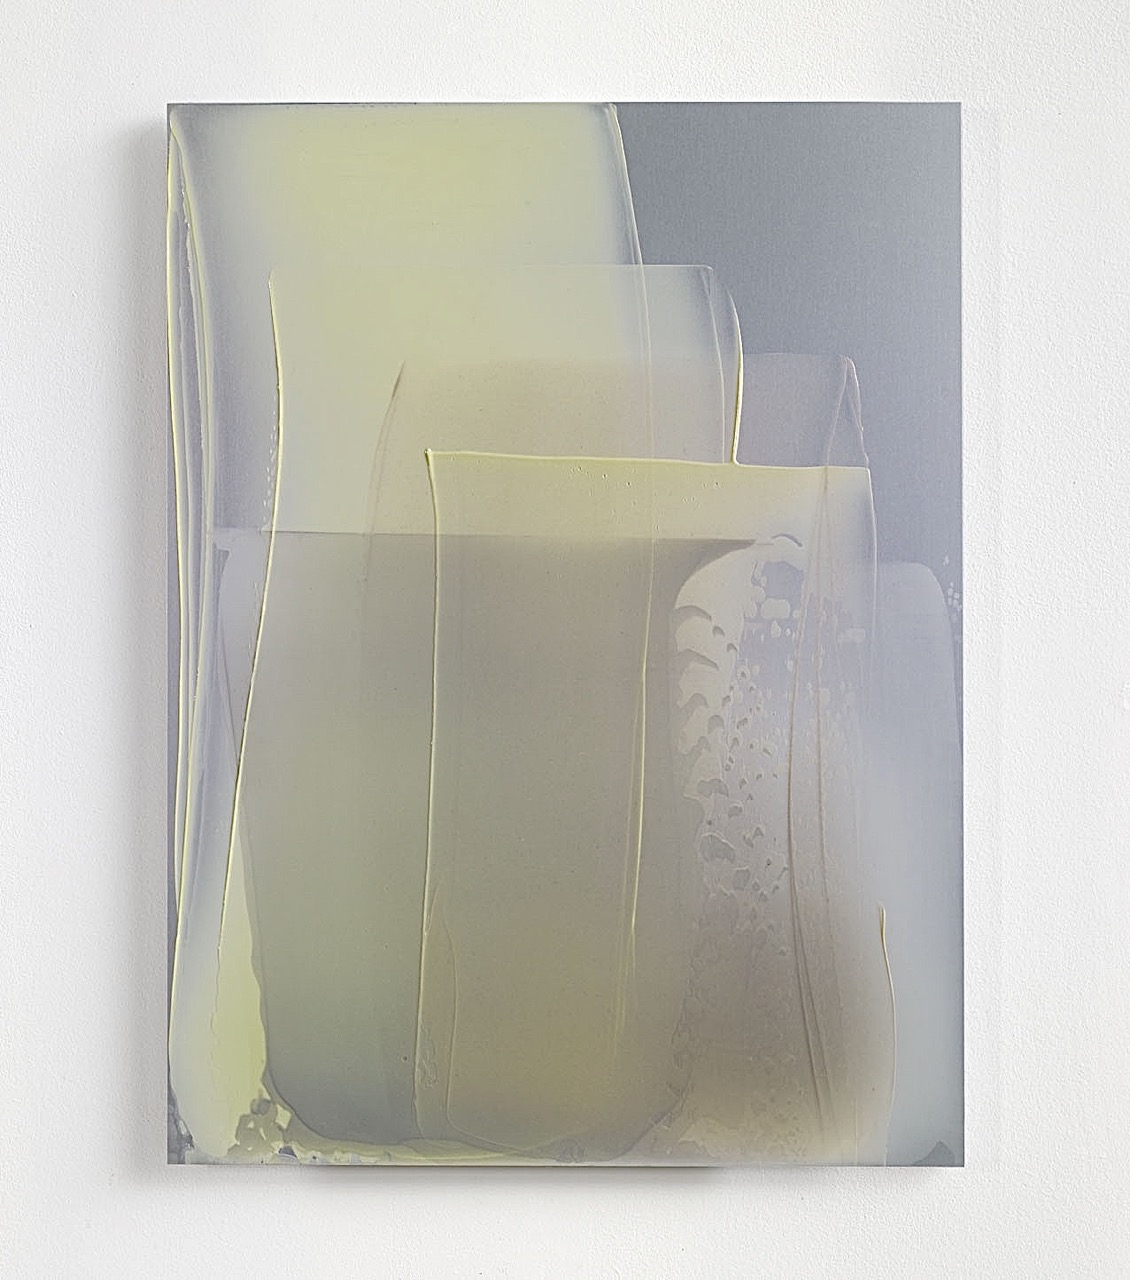 Untitled composition, 2010, 60x45cm.jpg